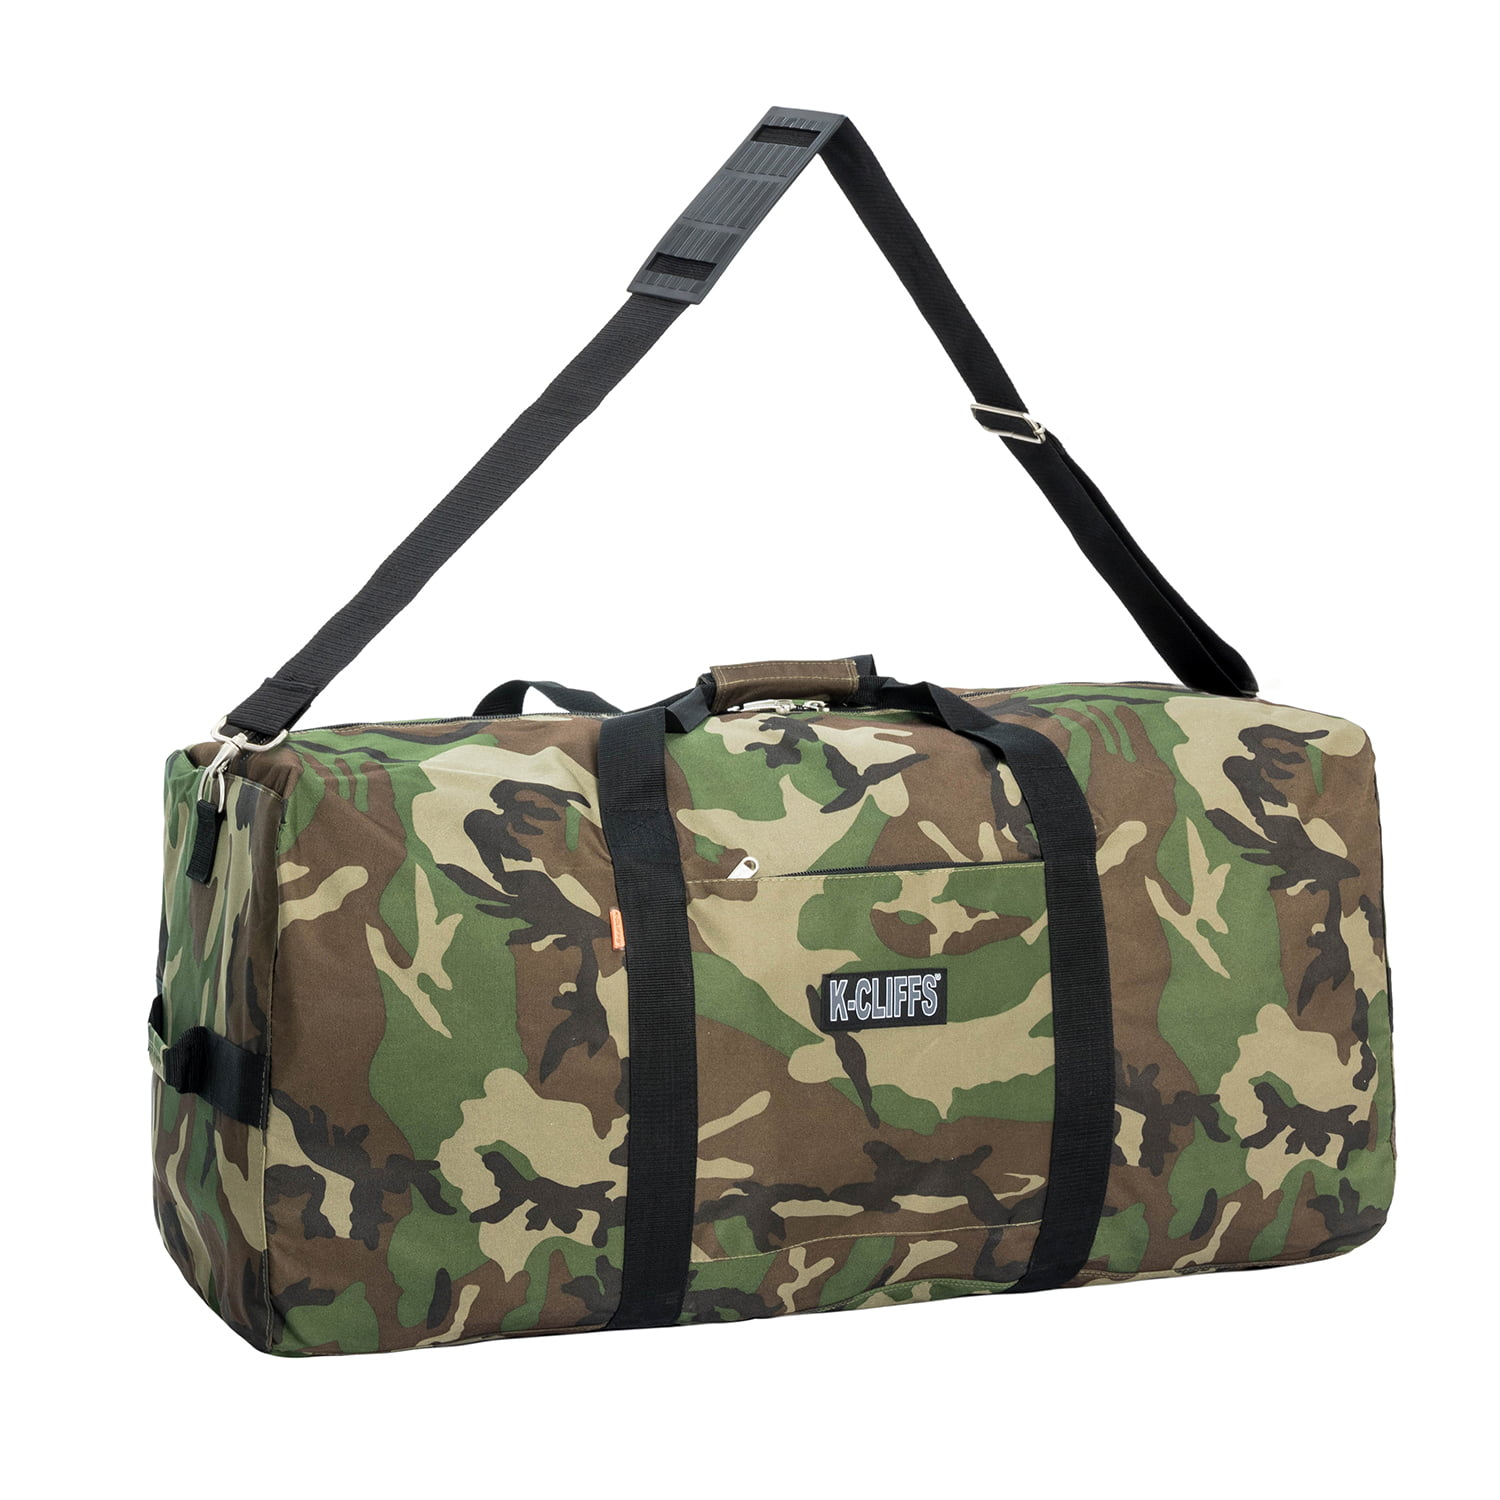 6113855d75 K-Cliffs Heavy Duty Large Square Cargo Duffel Jumbo Gear Bag Big Equipment  Bag Sport Duffel Oversized Travel Bag Huge Rack Bag - Walmart.com